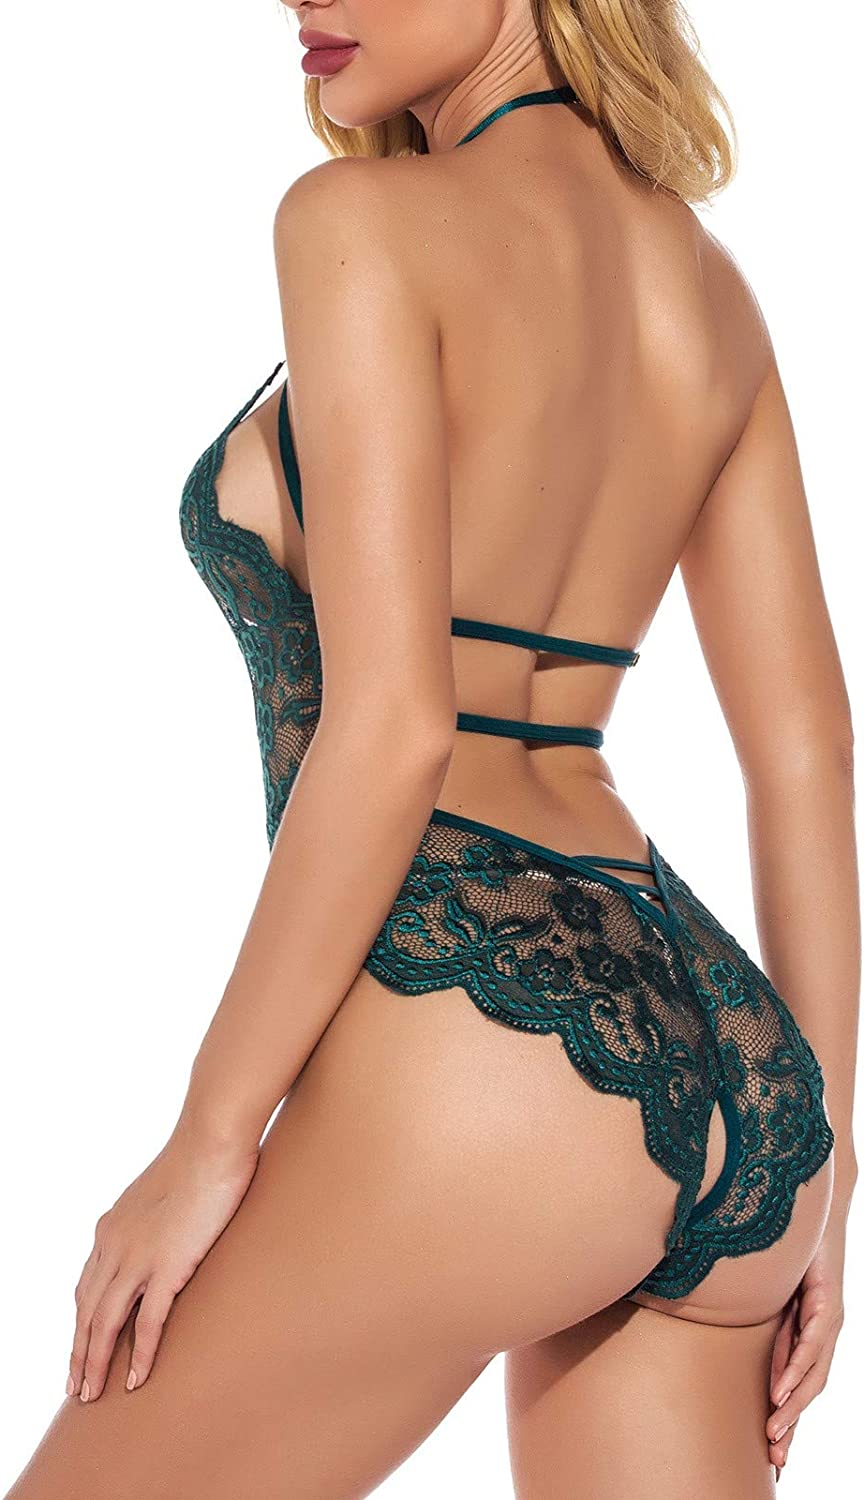 Forwelly Sexy Lingerie for Women,Sheer Mesh Lace One Piece High Cut Bodysuit,V Neck Backless Floral Halter Bobyboll